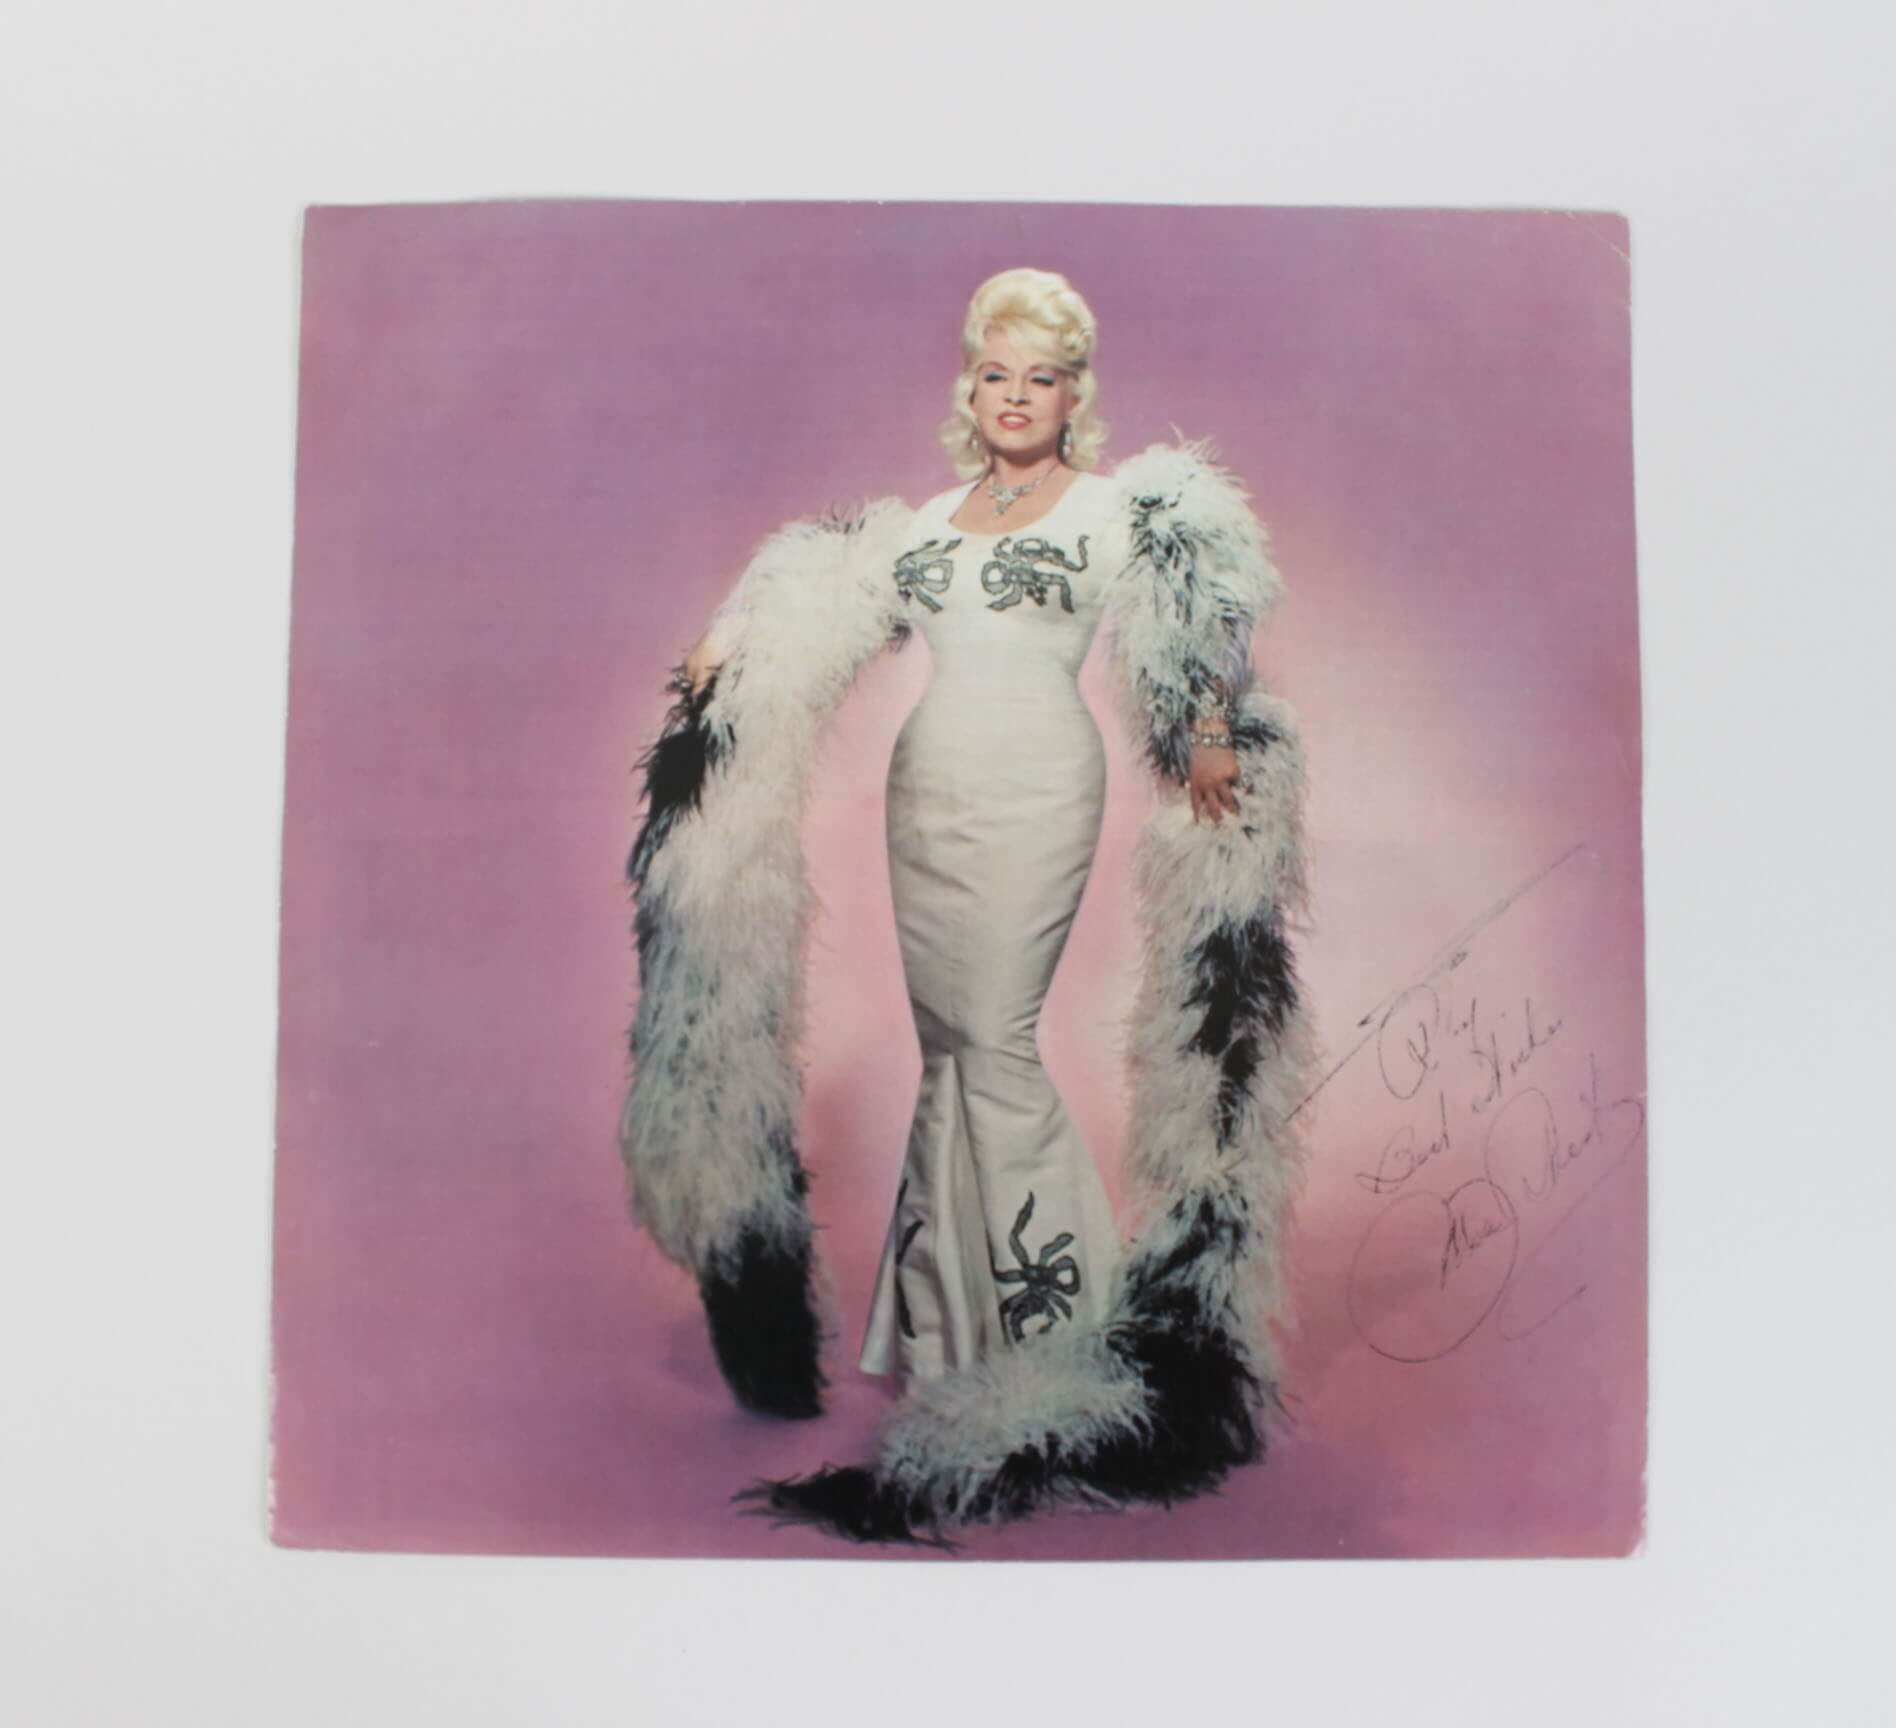 Singer Mae West Signed Record Insert45164_01